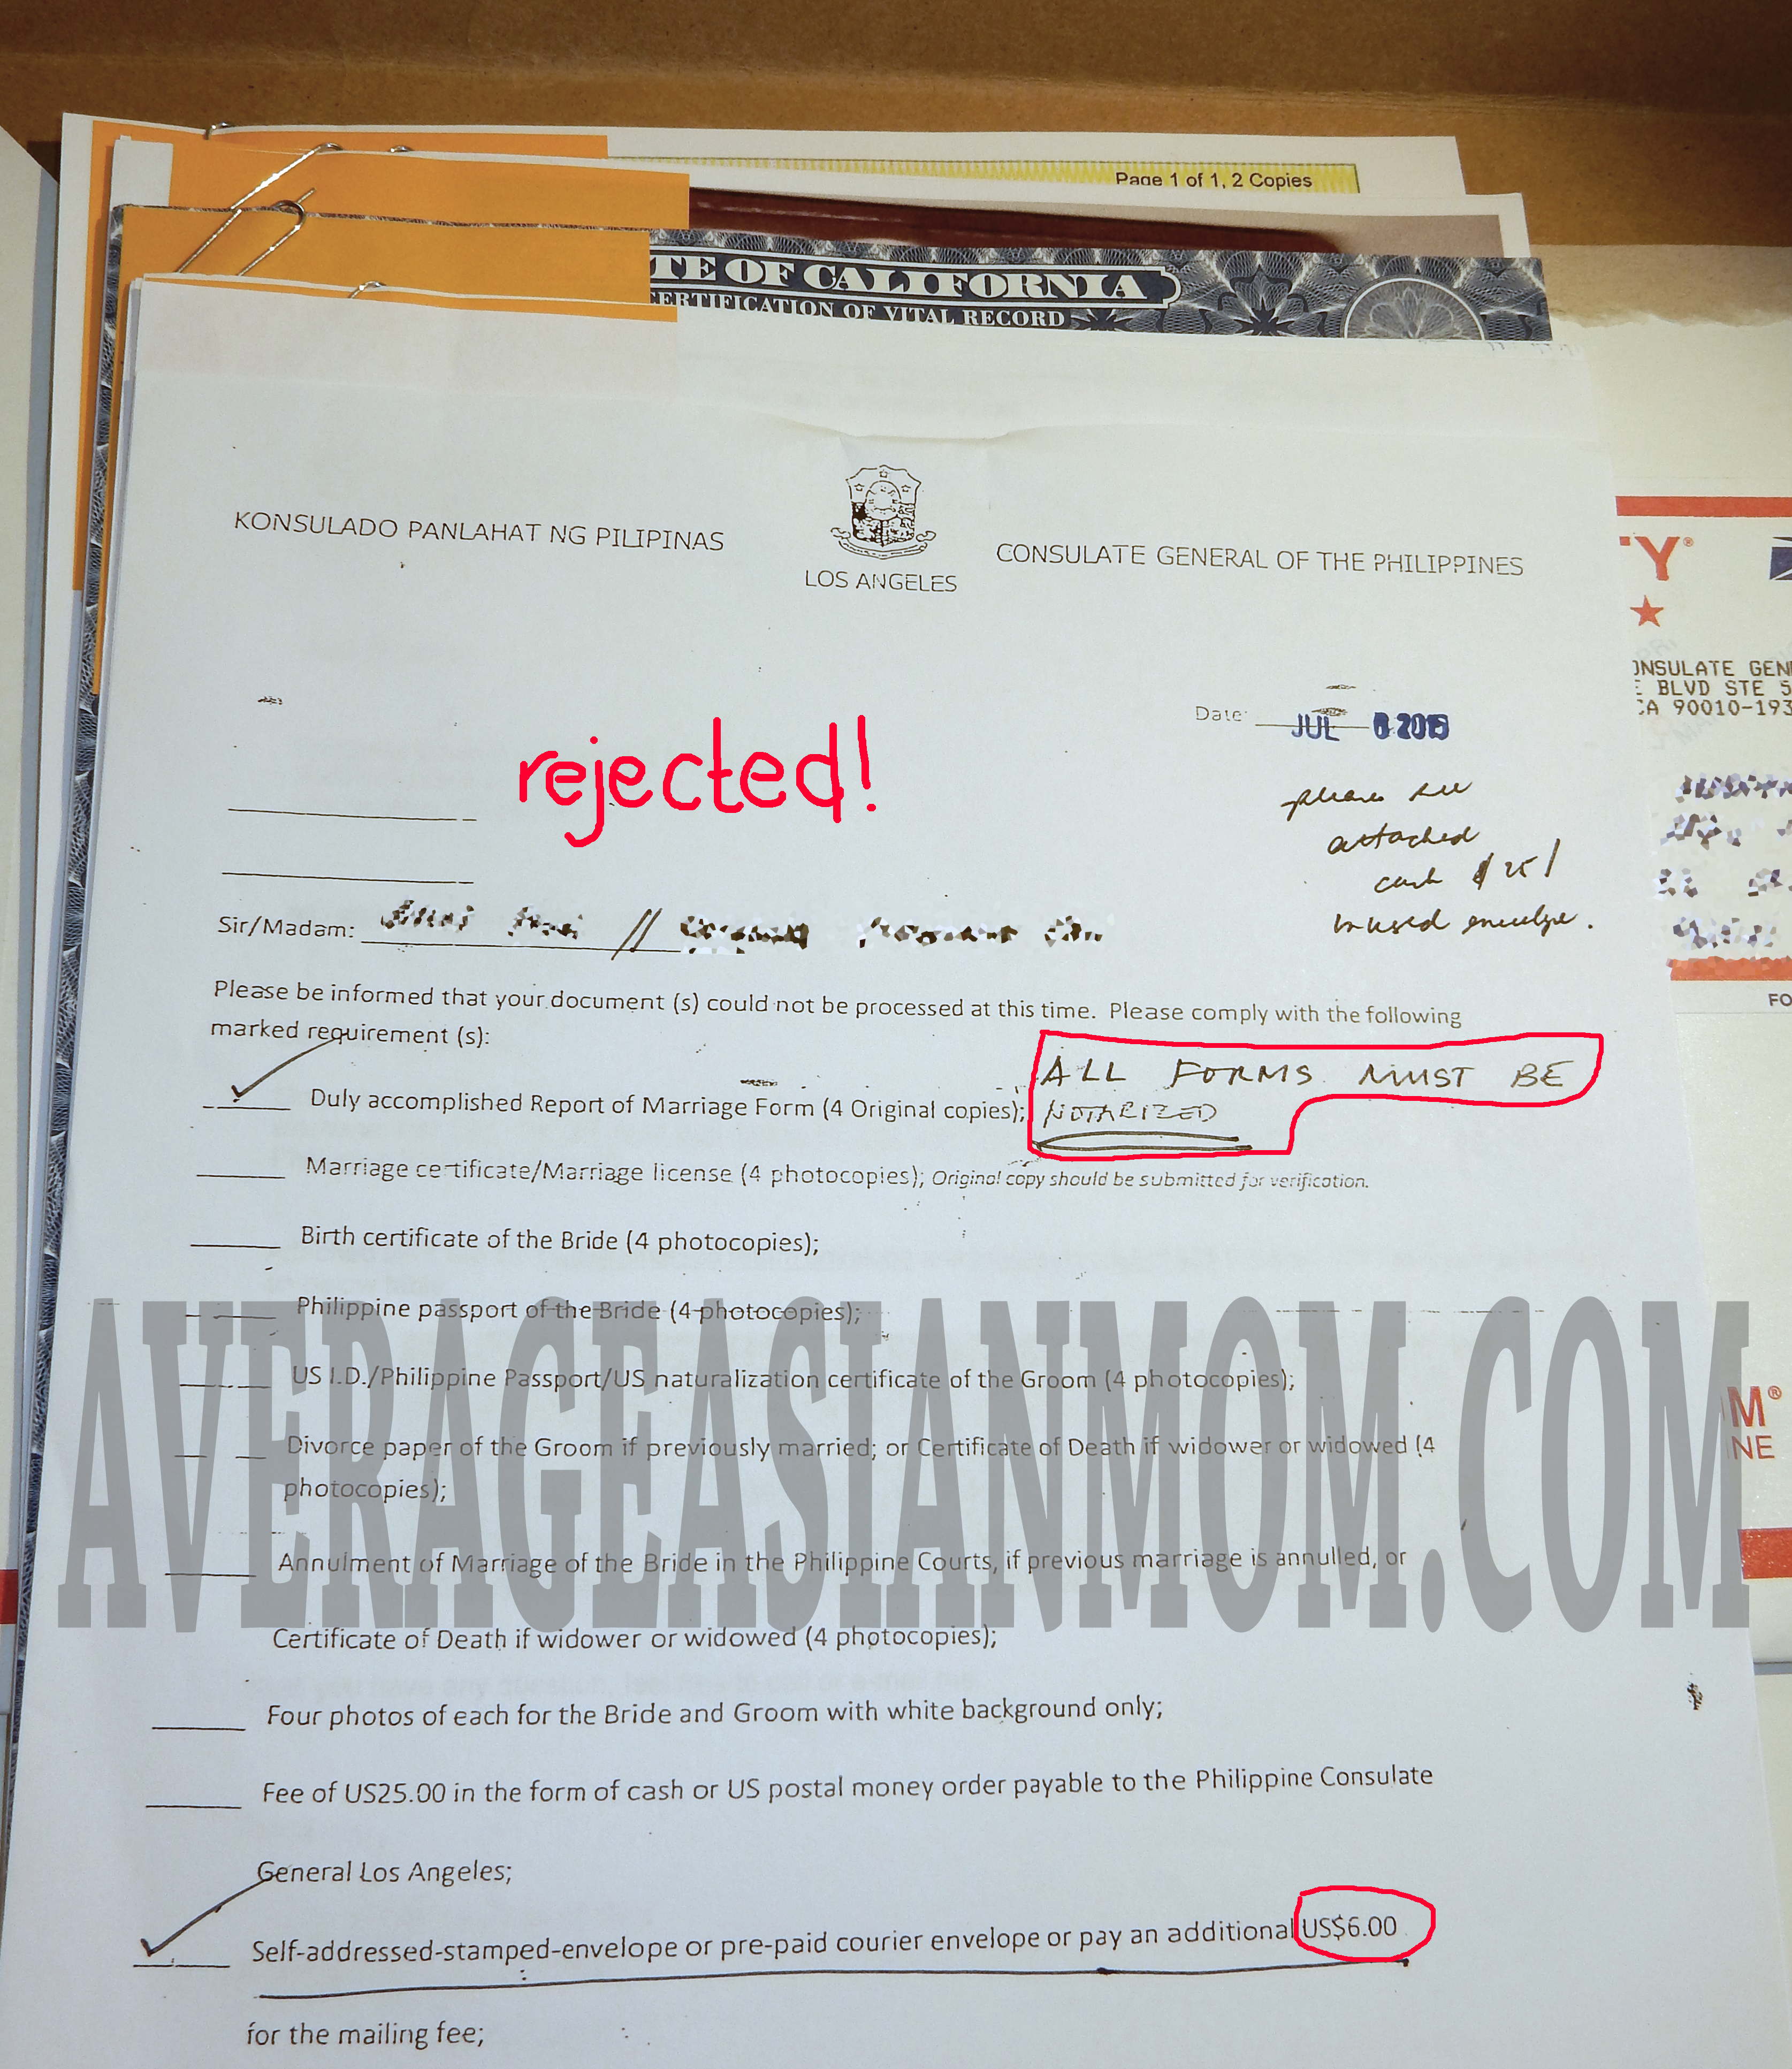 Report of Marriage to the Philippine Consulate – Part I (via mail) |